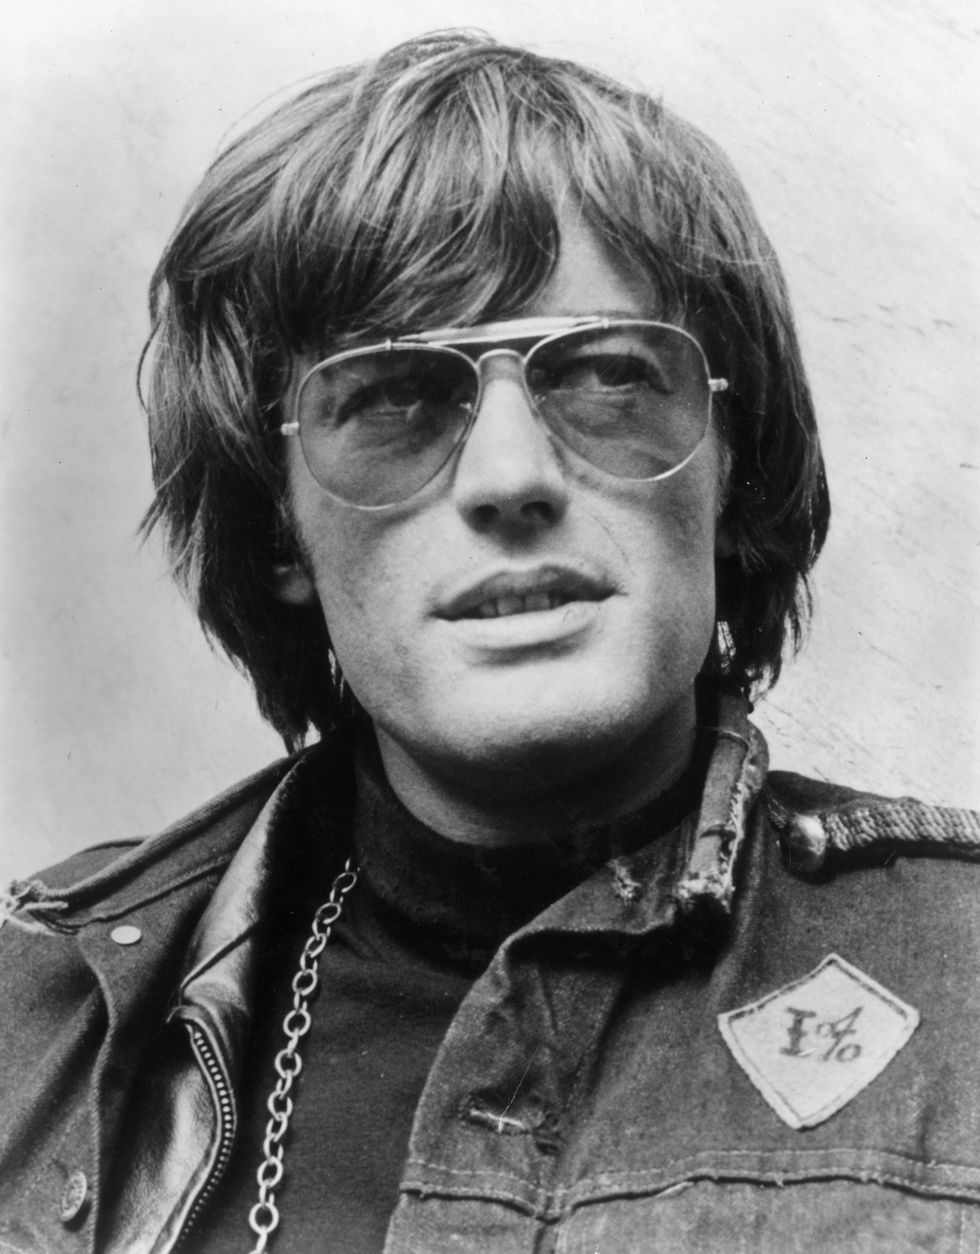 'Holden Caulfield at 27': Esquire's 1968 Profile of Peter Fonda